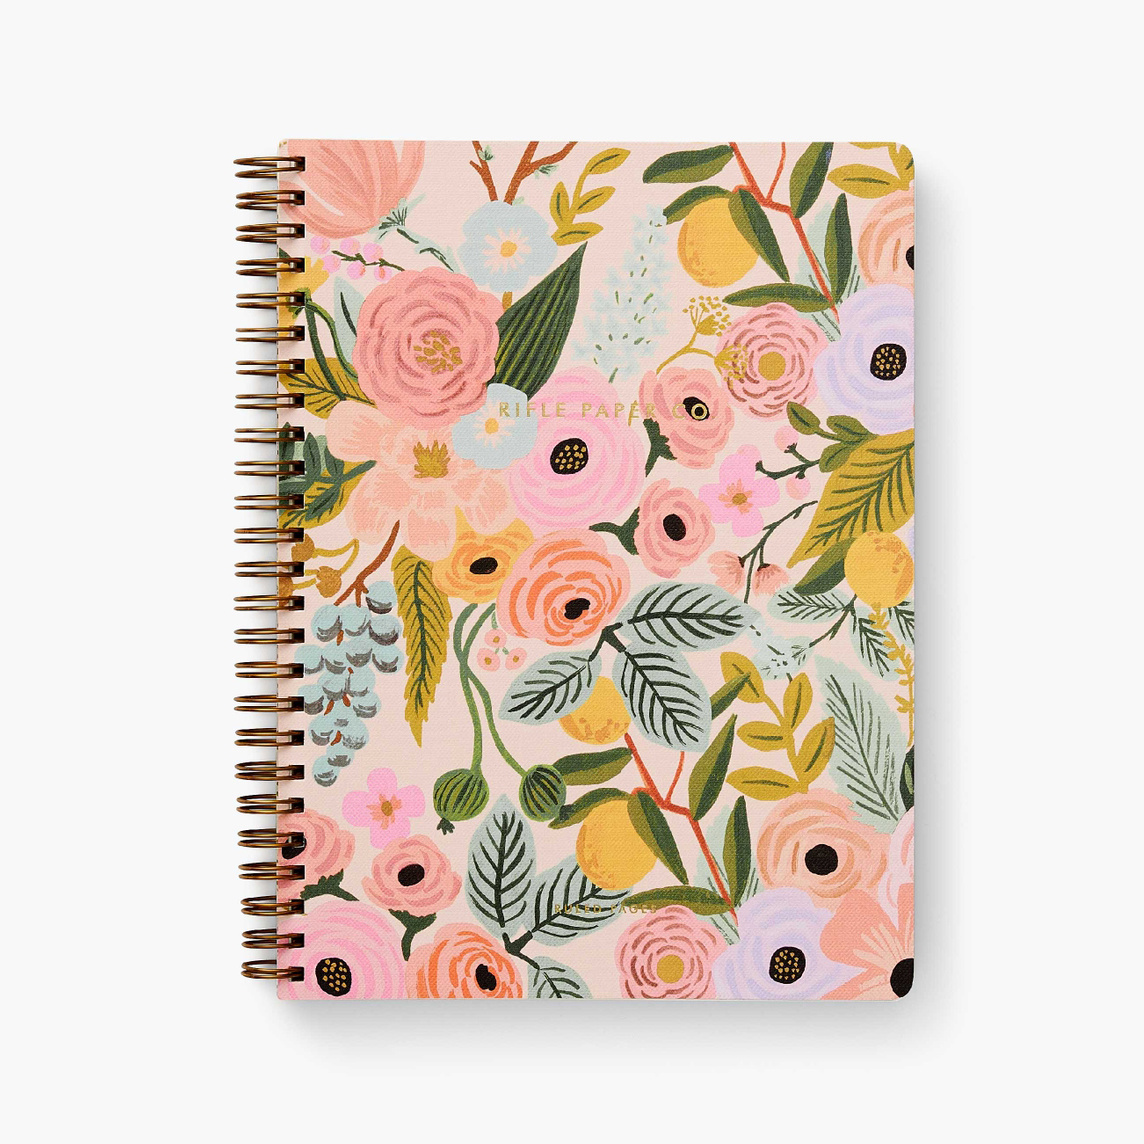 Rifle Paper Co - RP Rifle Paper Co - Garden Party Spiral Lined Notebook